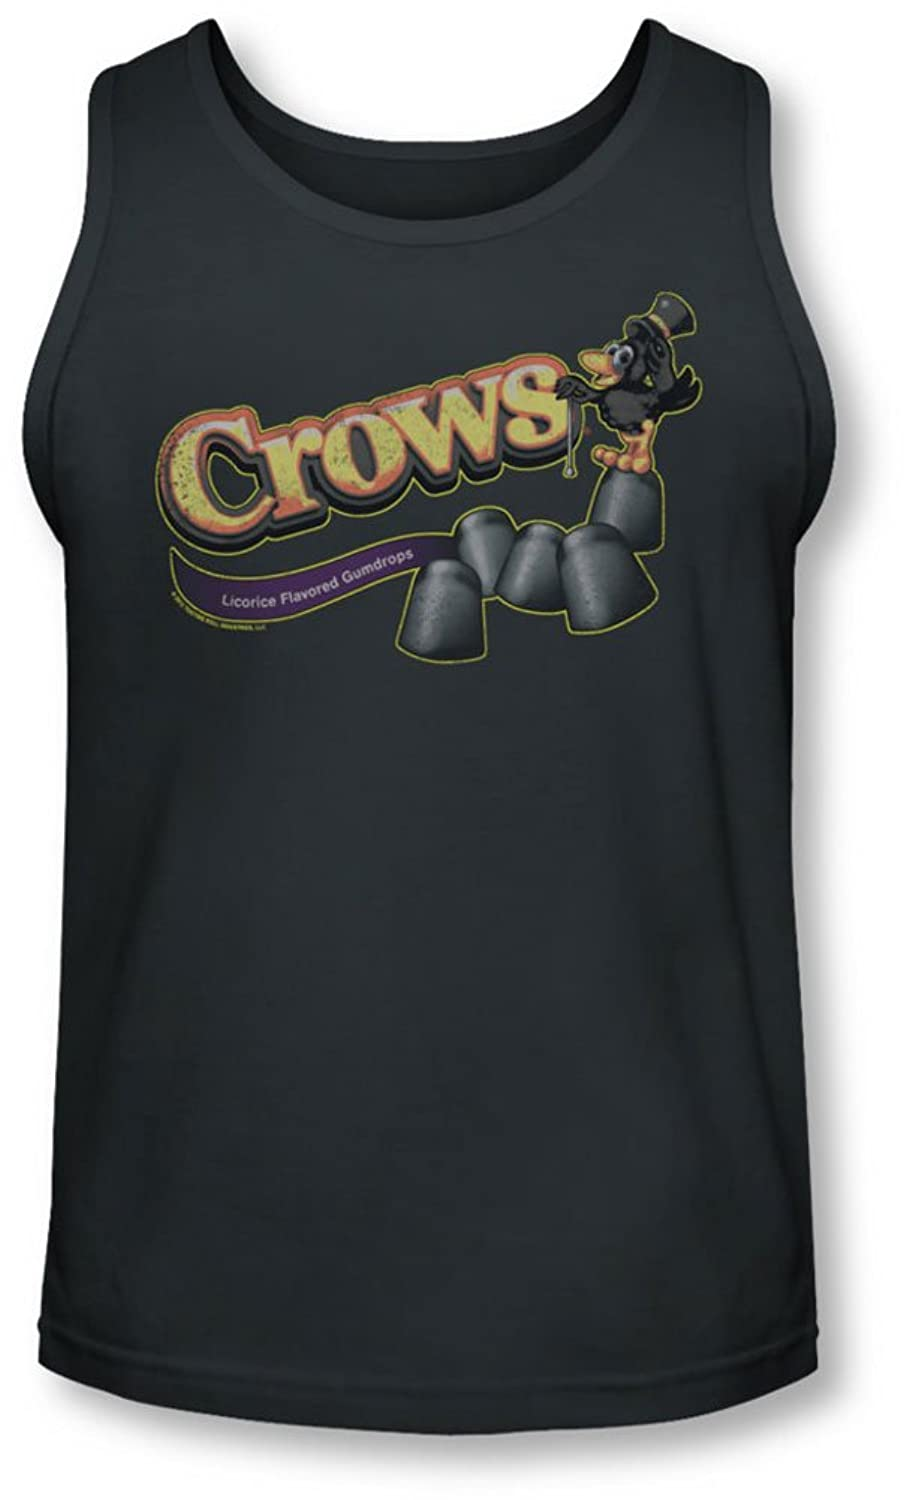 Tootise Roll - Mens Crows Tank-Top